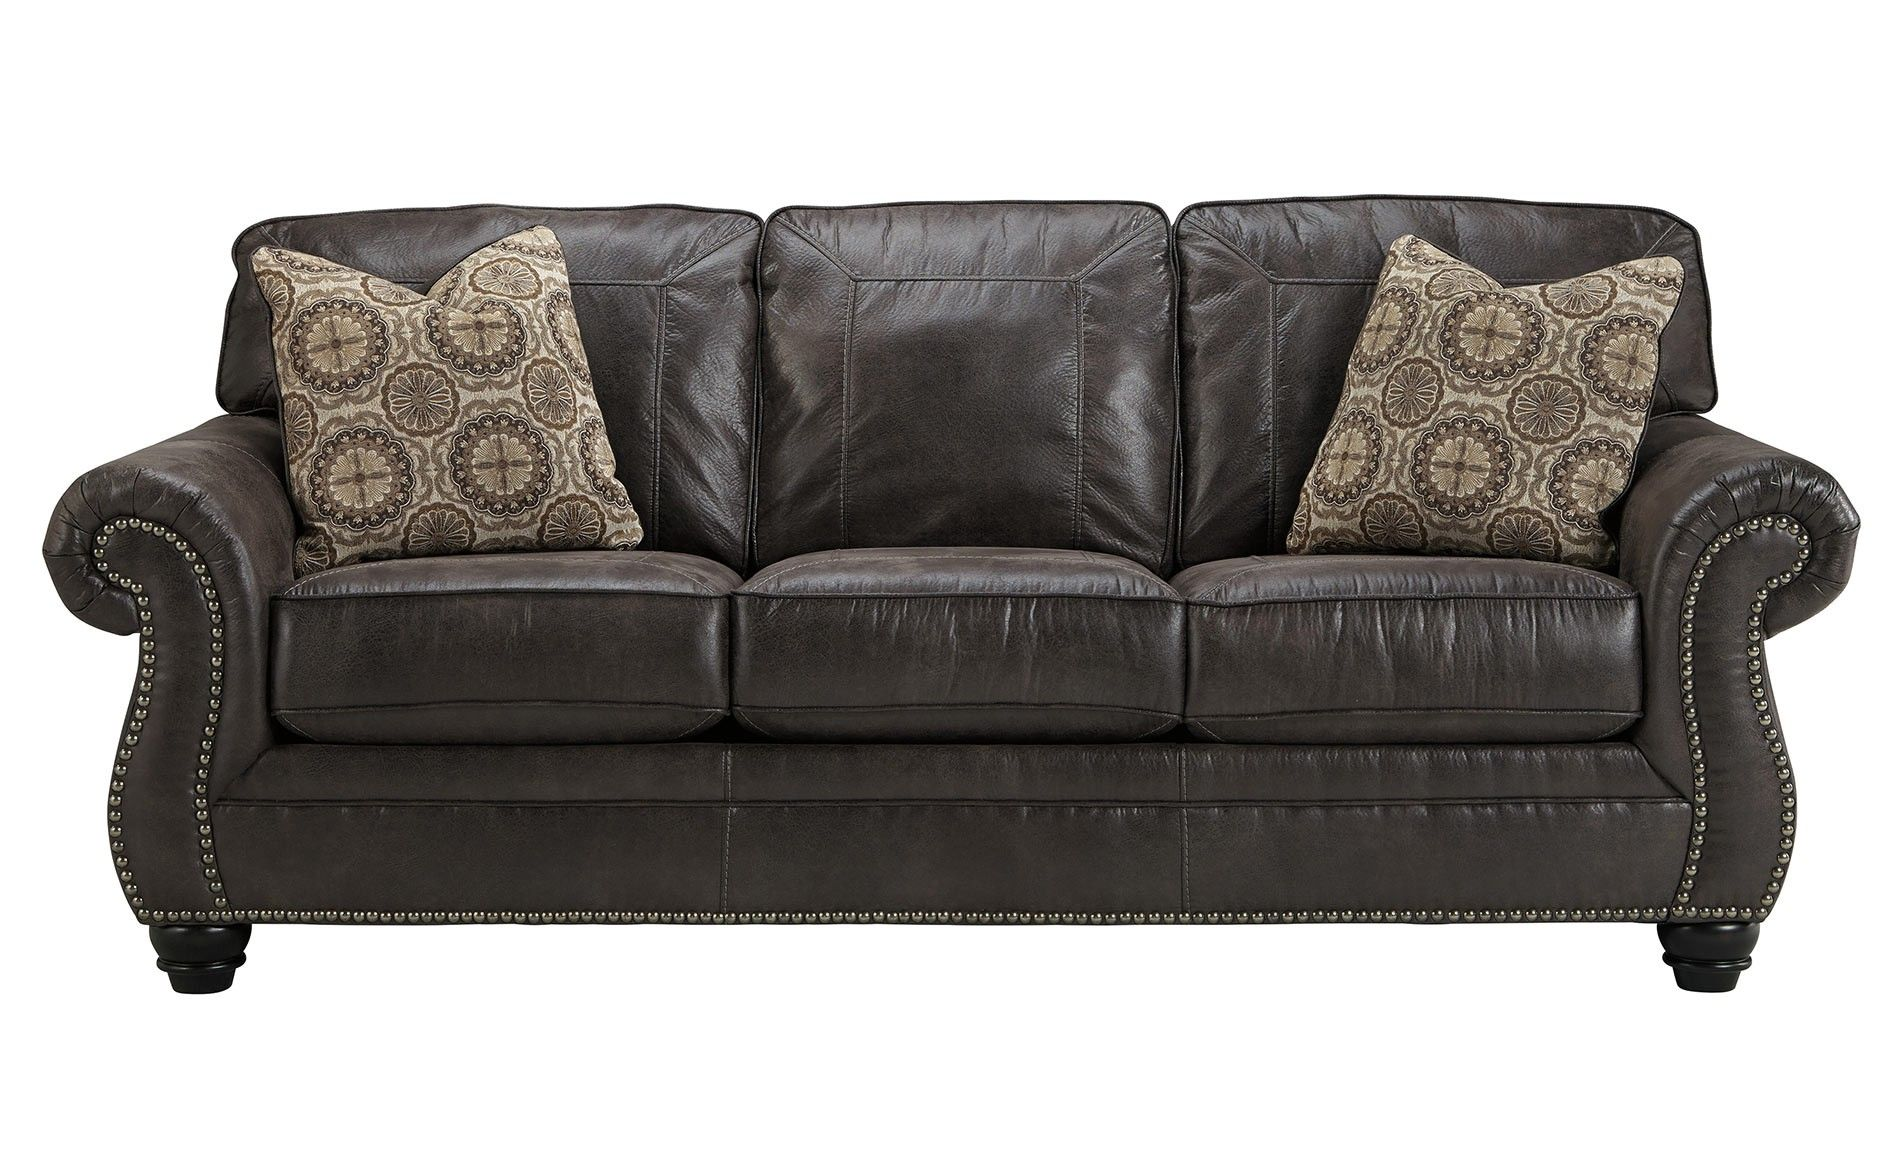 black leather sofa with nailheads how to clean covers at home ashley breville charcoal family room ideas